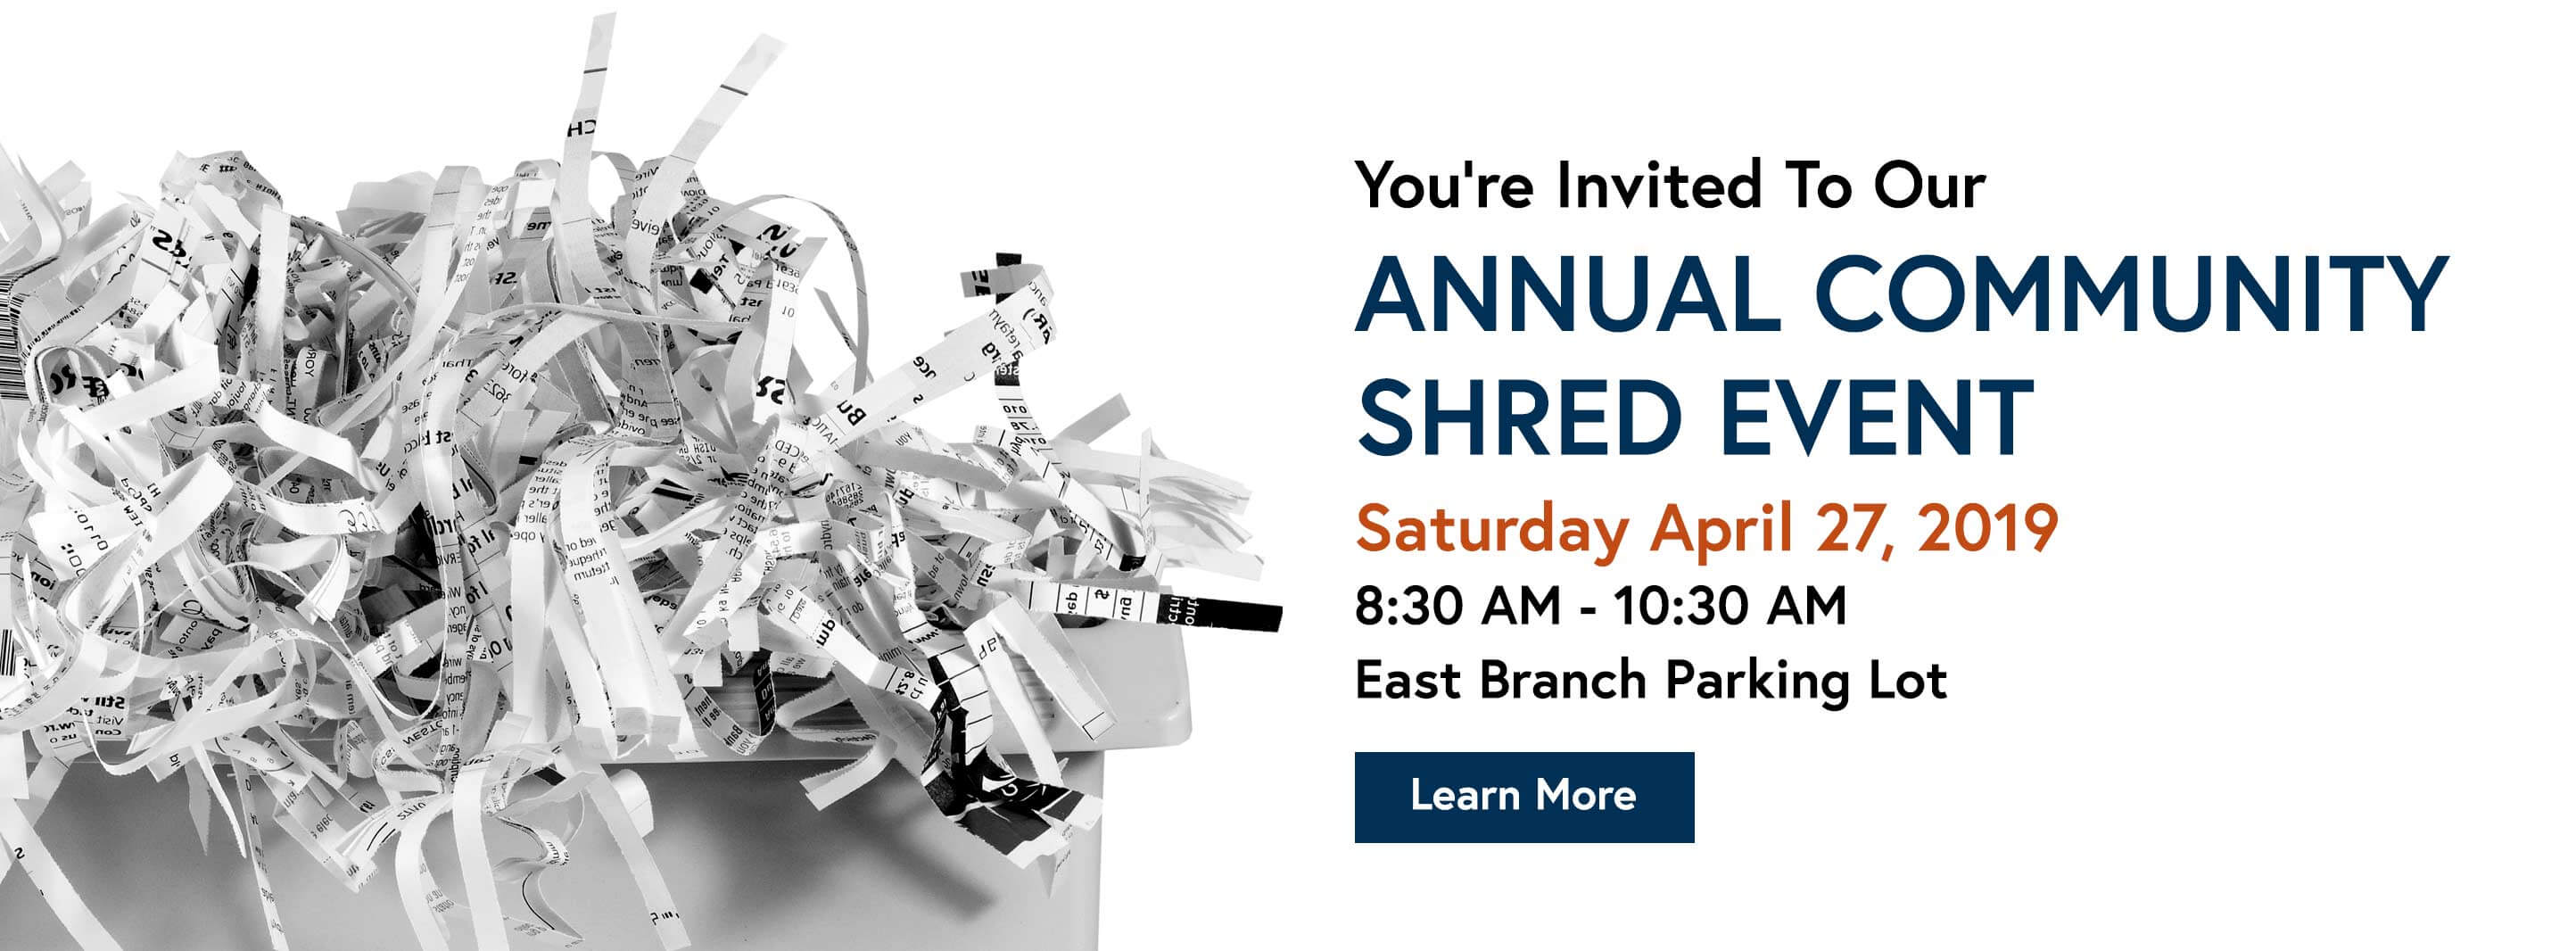 You Are Invited To Our Annual Community Shred Event Saturday April 27, 2019 8:30 AM - 10:30 AM East Branch Parking Lot. Learn More.